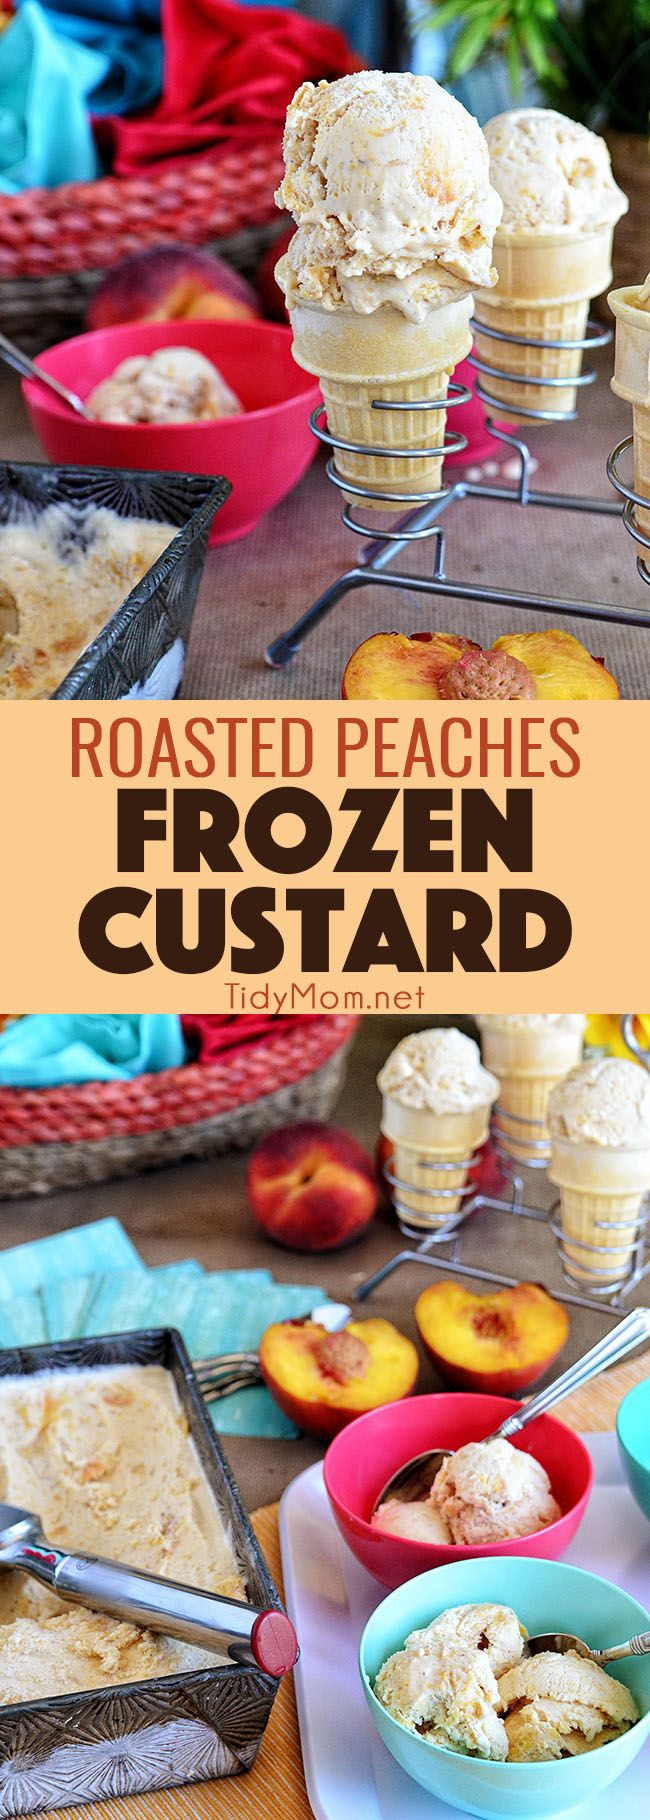 When the days are filled with bike rides, swimming, frozen treats and fresh fruit .....combine the signs of summer into a delicious creamy Roasted Peach Frozen Custard.  Serve in a cone or a bowl, either way it's sure to cool you off. find this easy homemade frozen custard recipe at TidyMom.net